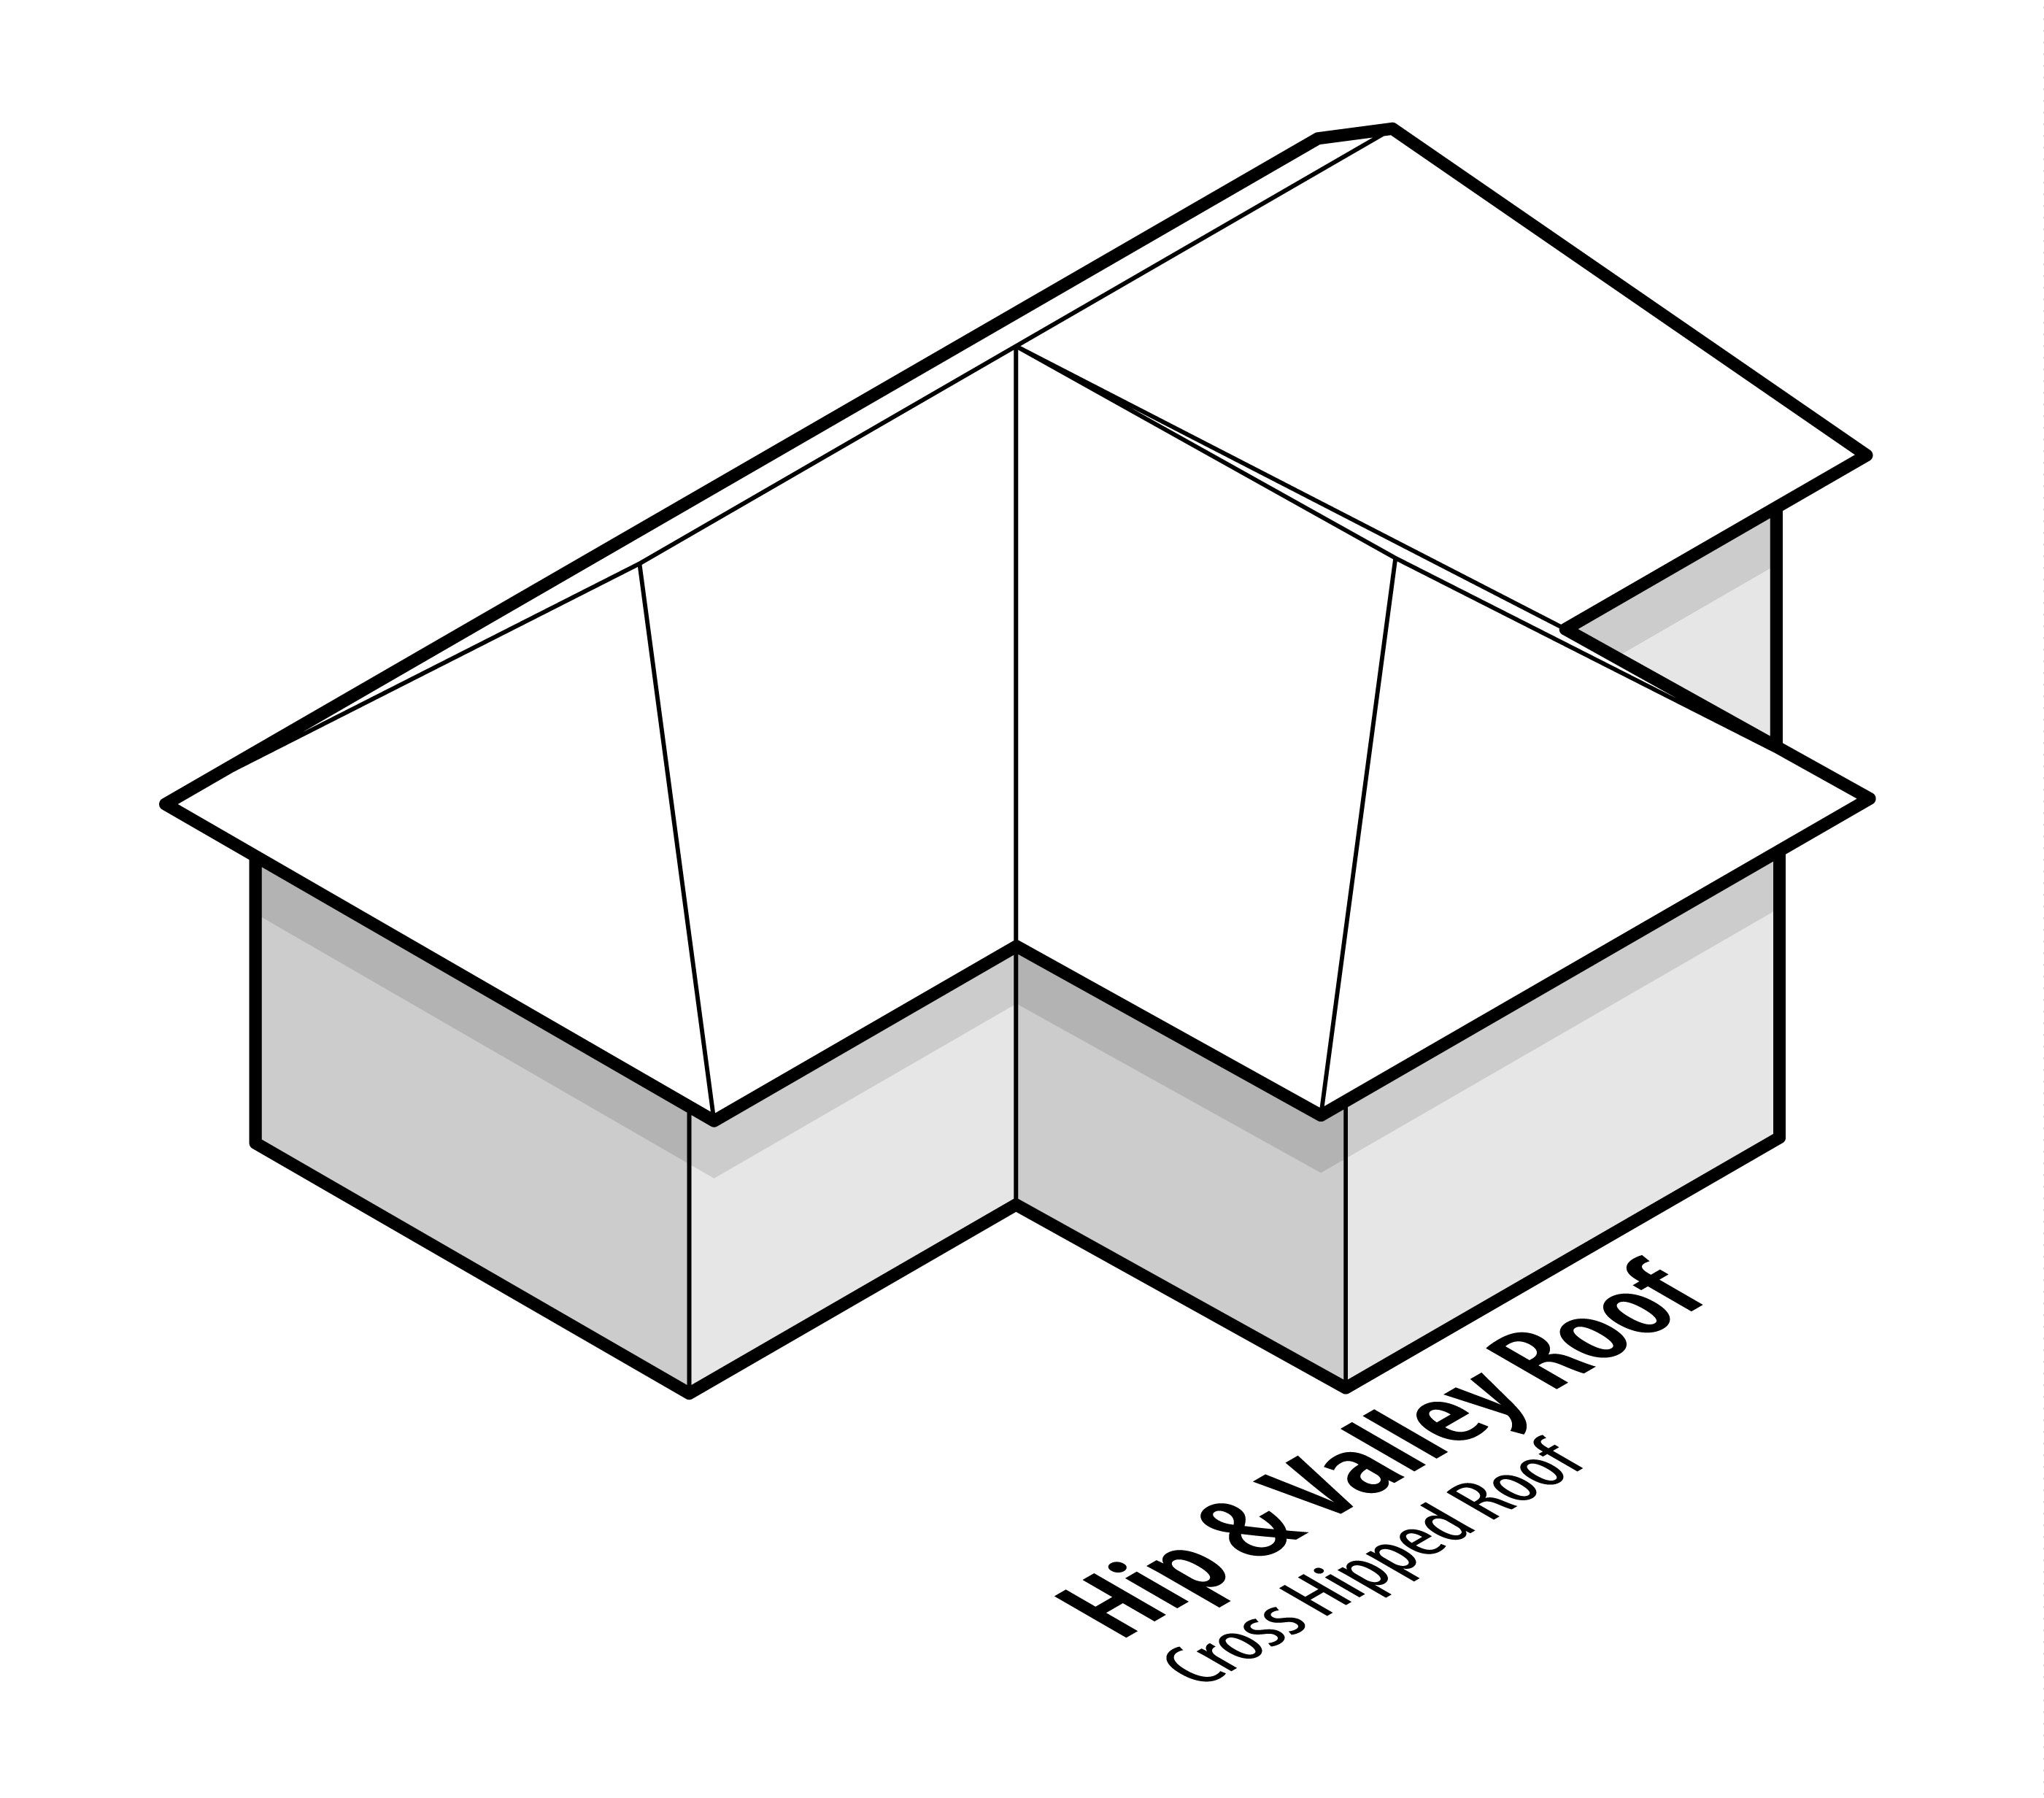 36 Types Of Roofs Styles For Houses Illustrated Roof Design Examples Roof Design Hip Roof Design Hip Roof